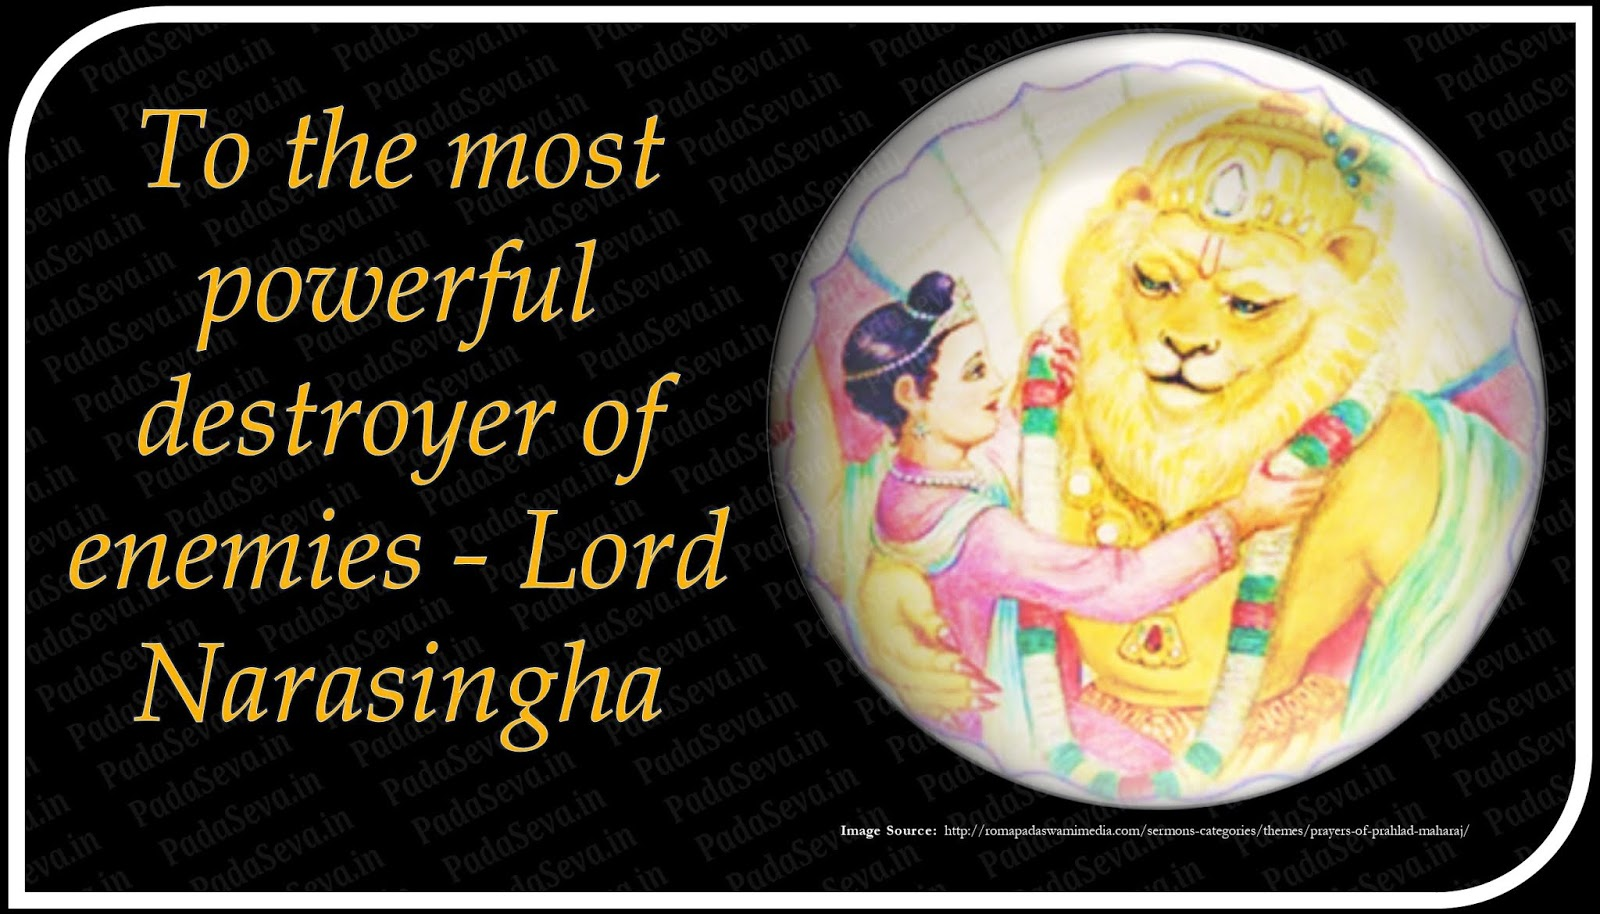 To the most powerful destroyer of enemies - Lord Narasingha